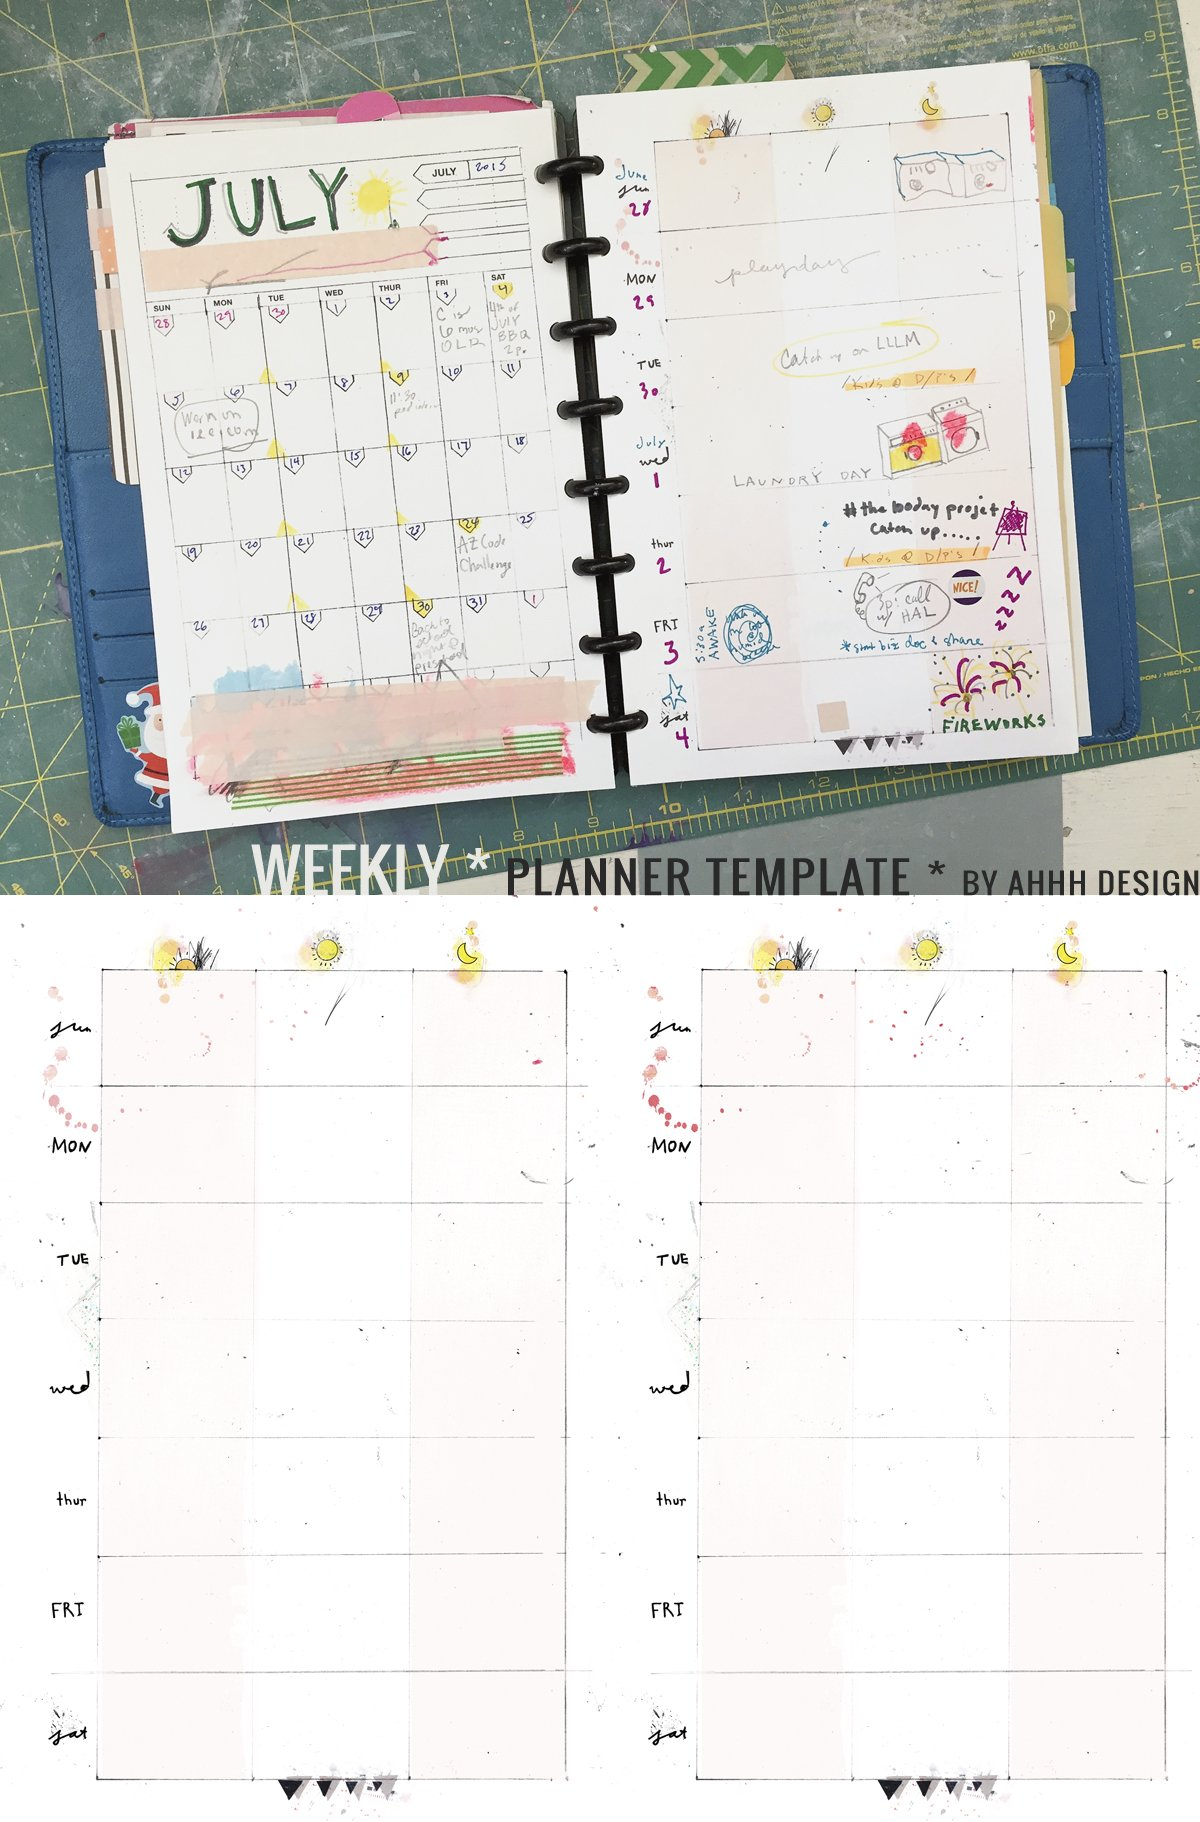 Diy Planner Archives ⋆ Amanda Hawkins   Ahhh Designamanda Show Me Monthly Calendars With Agenda Pages That Are 5.5X8.5